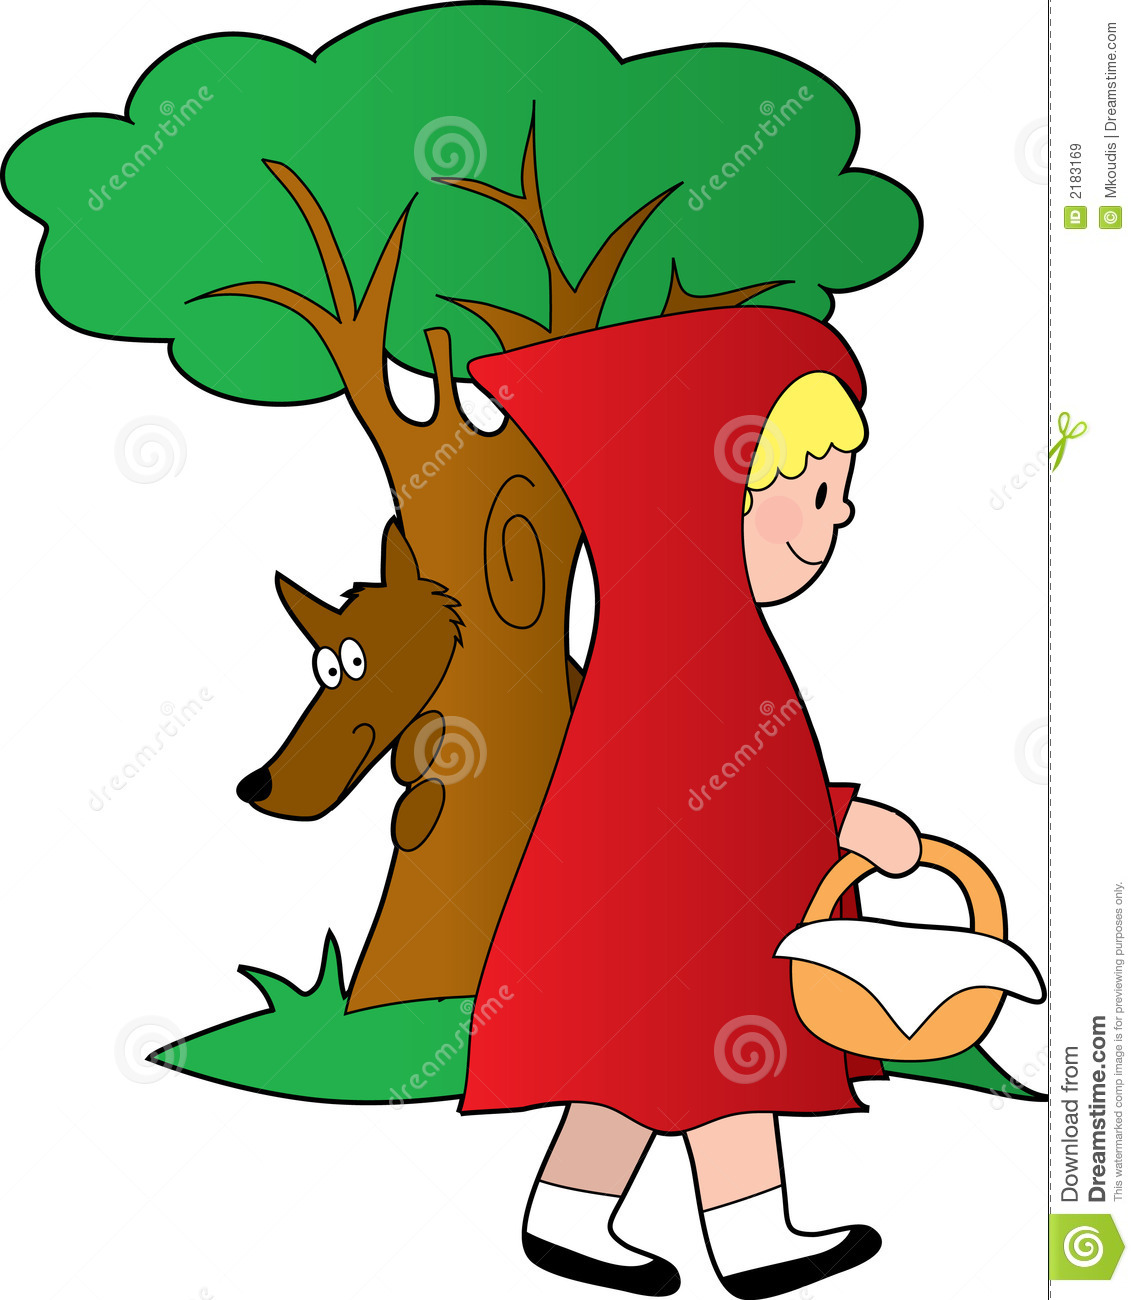 Red Riding Hood Clipart - Clipart Kid